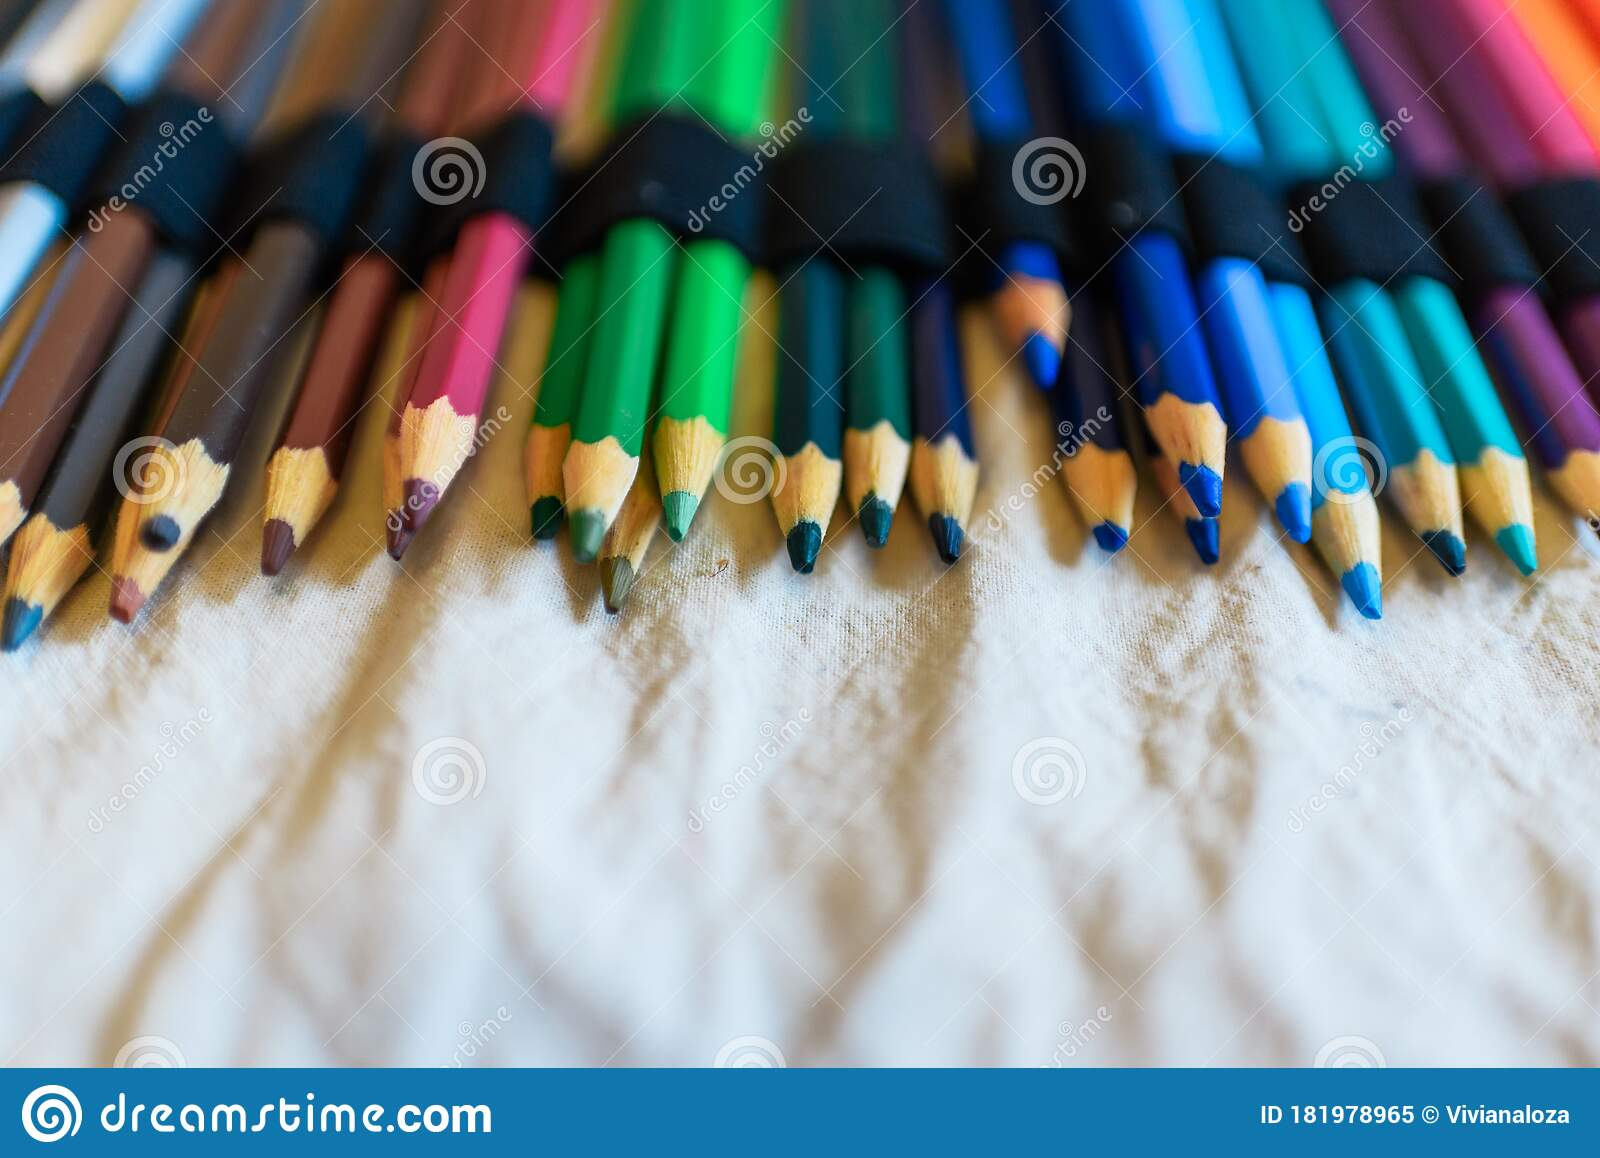 Colored Pencils On Beige Texture Stock Image - Image of ...